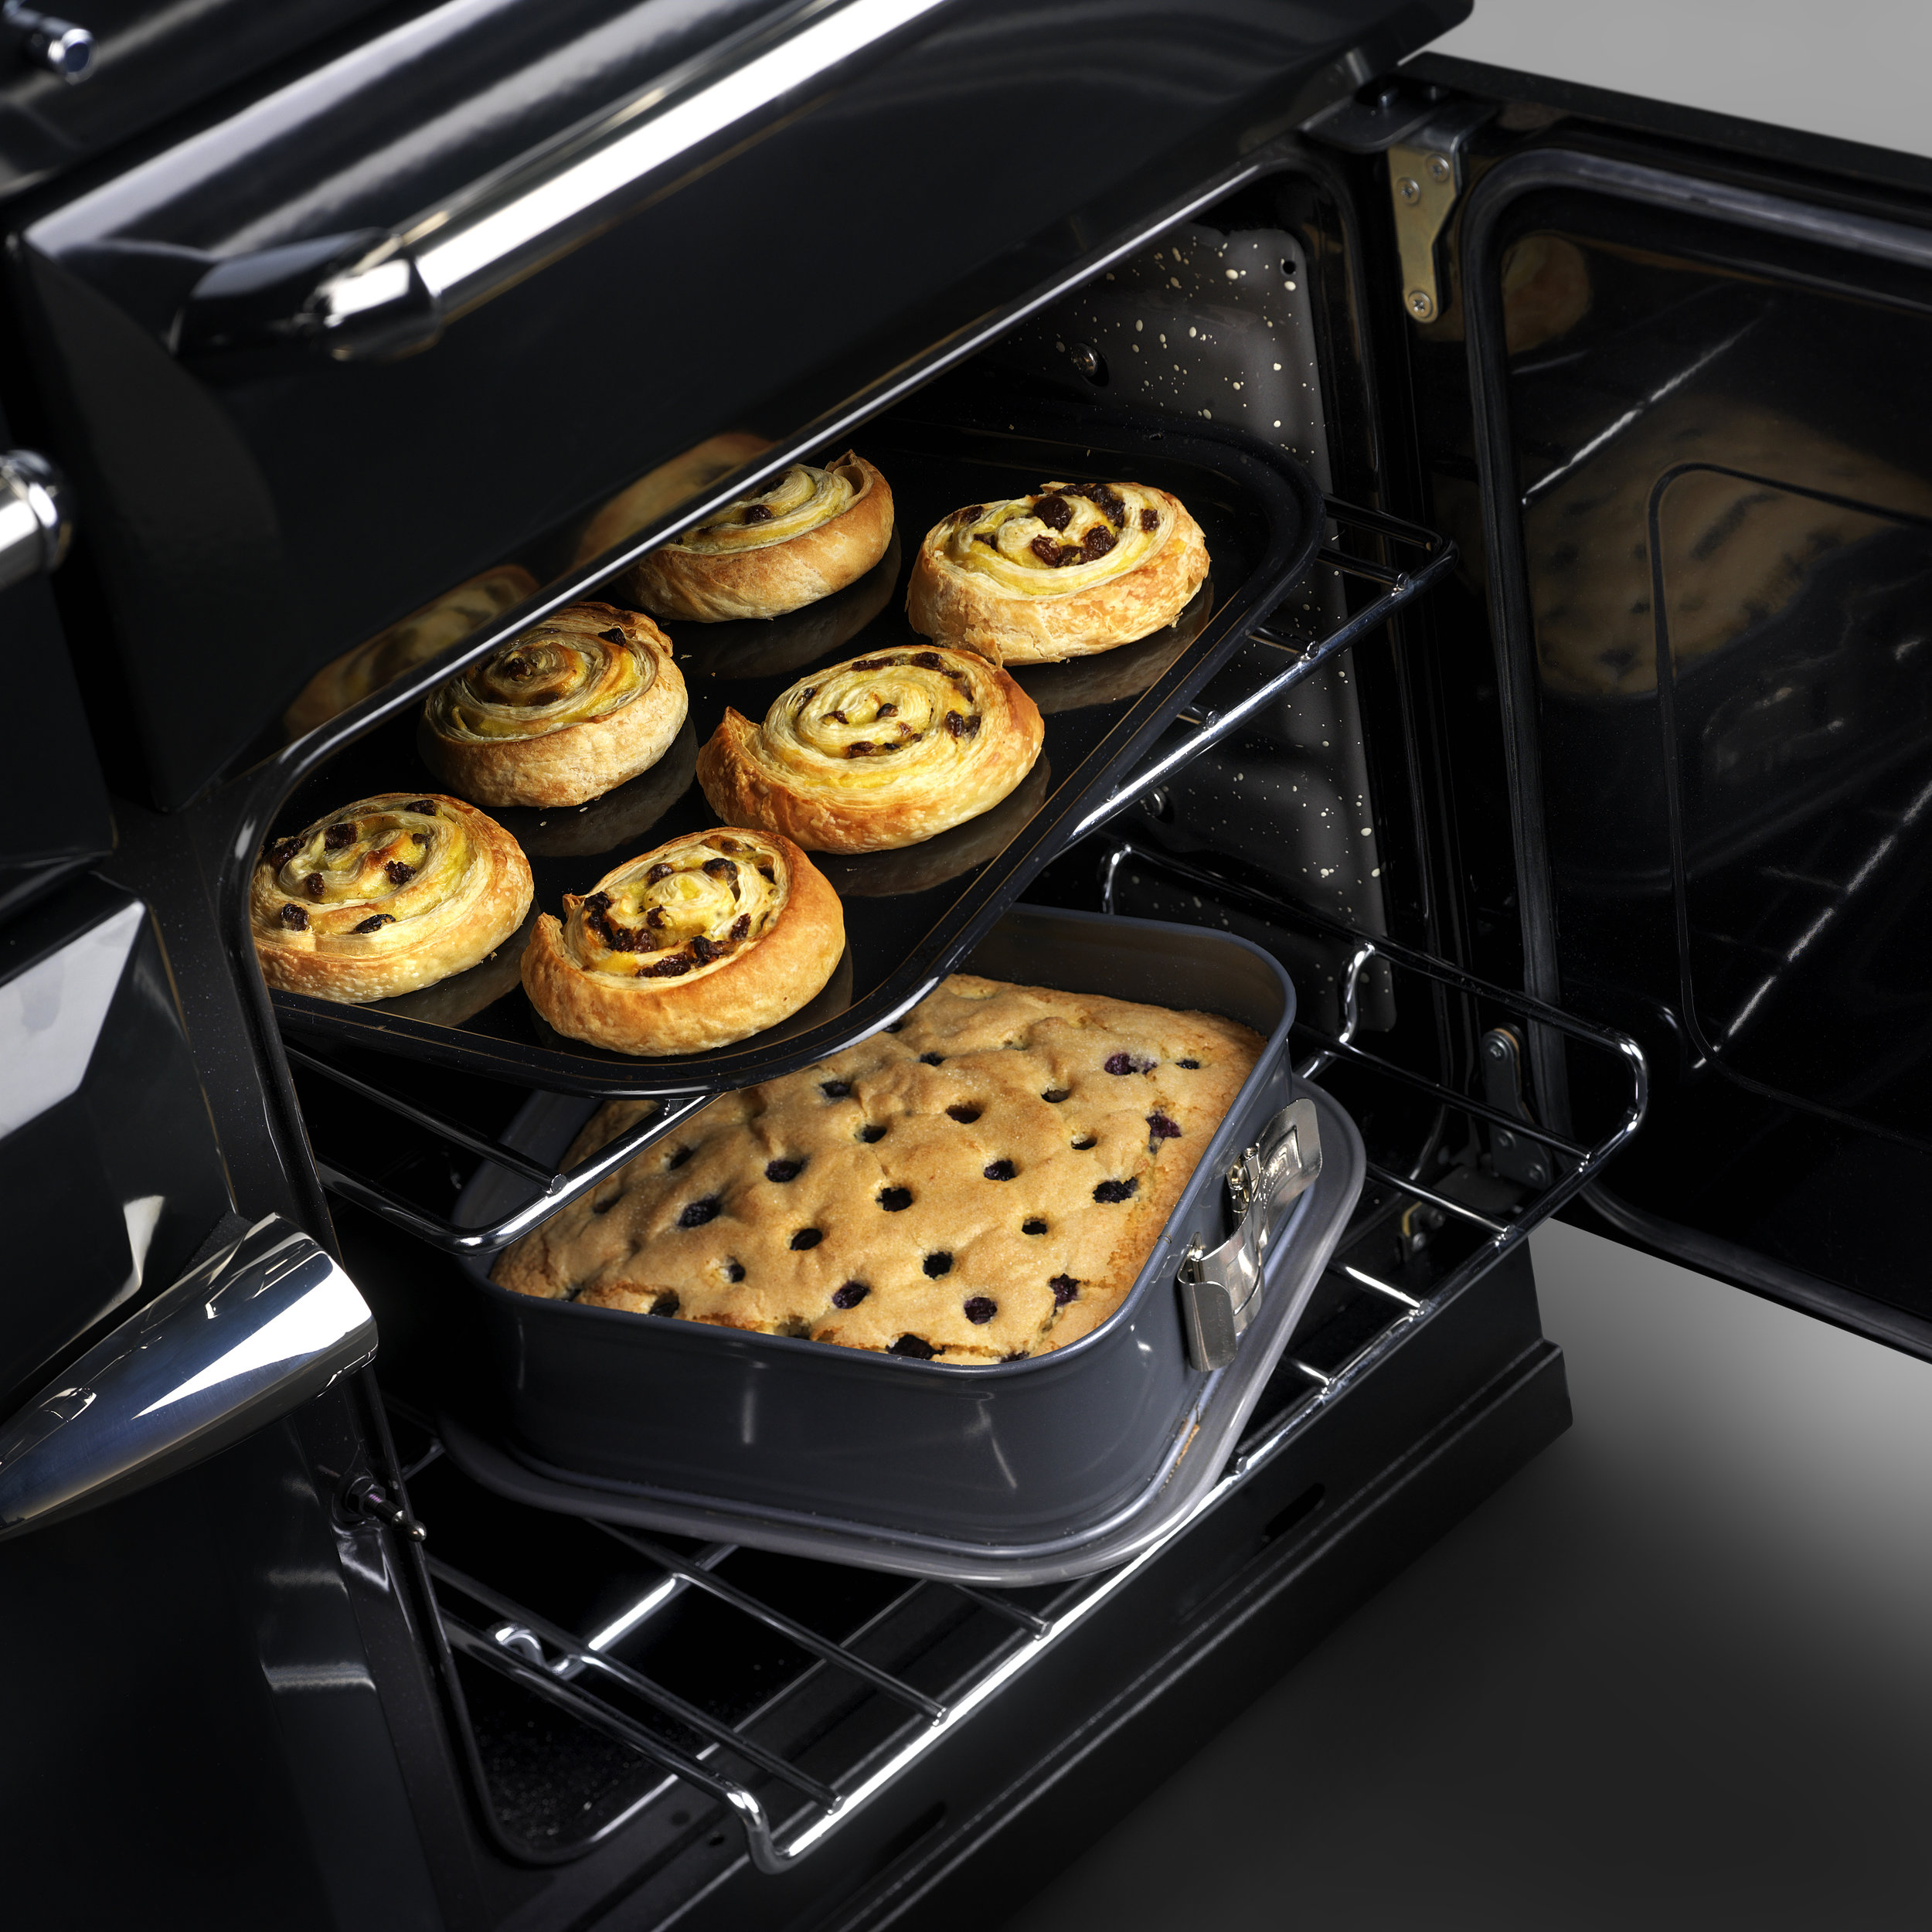 AGA_Masterchef 110_BLACK_Blueberry_Pastry.jpg